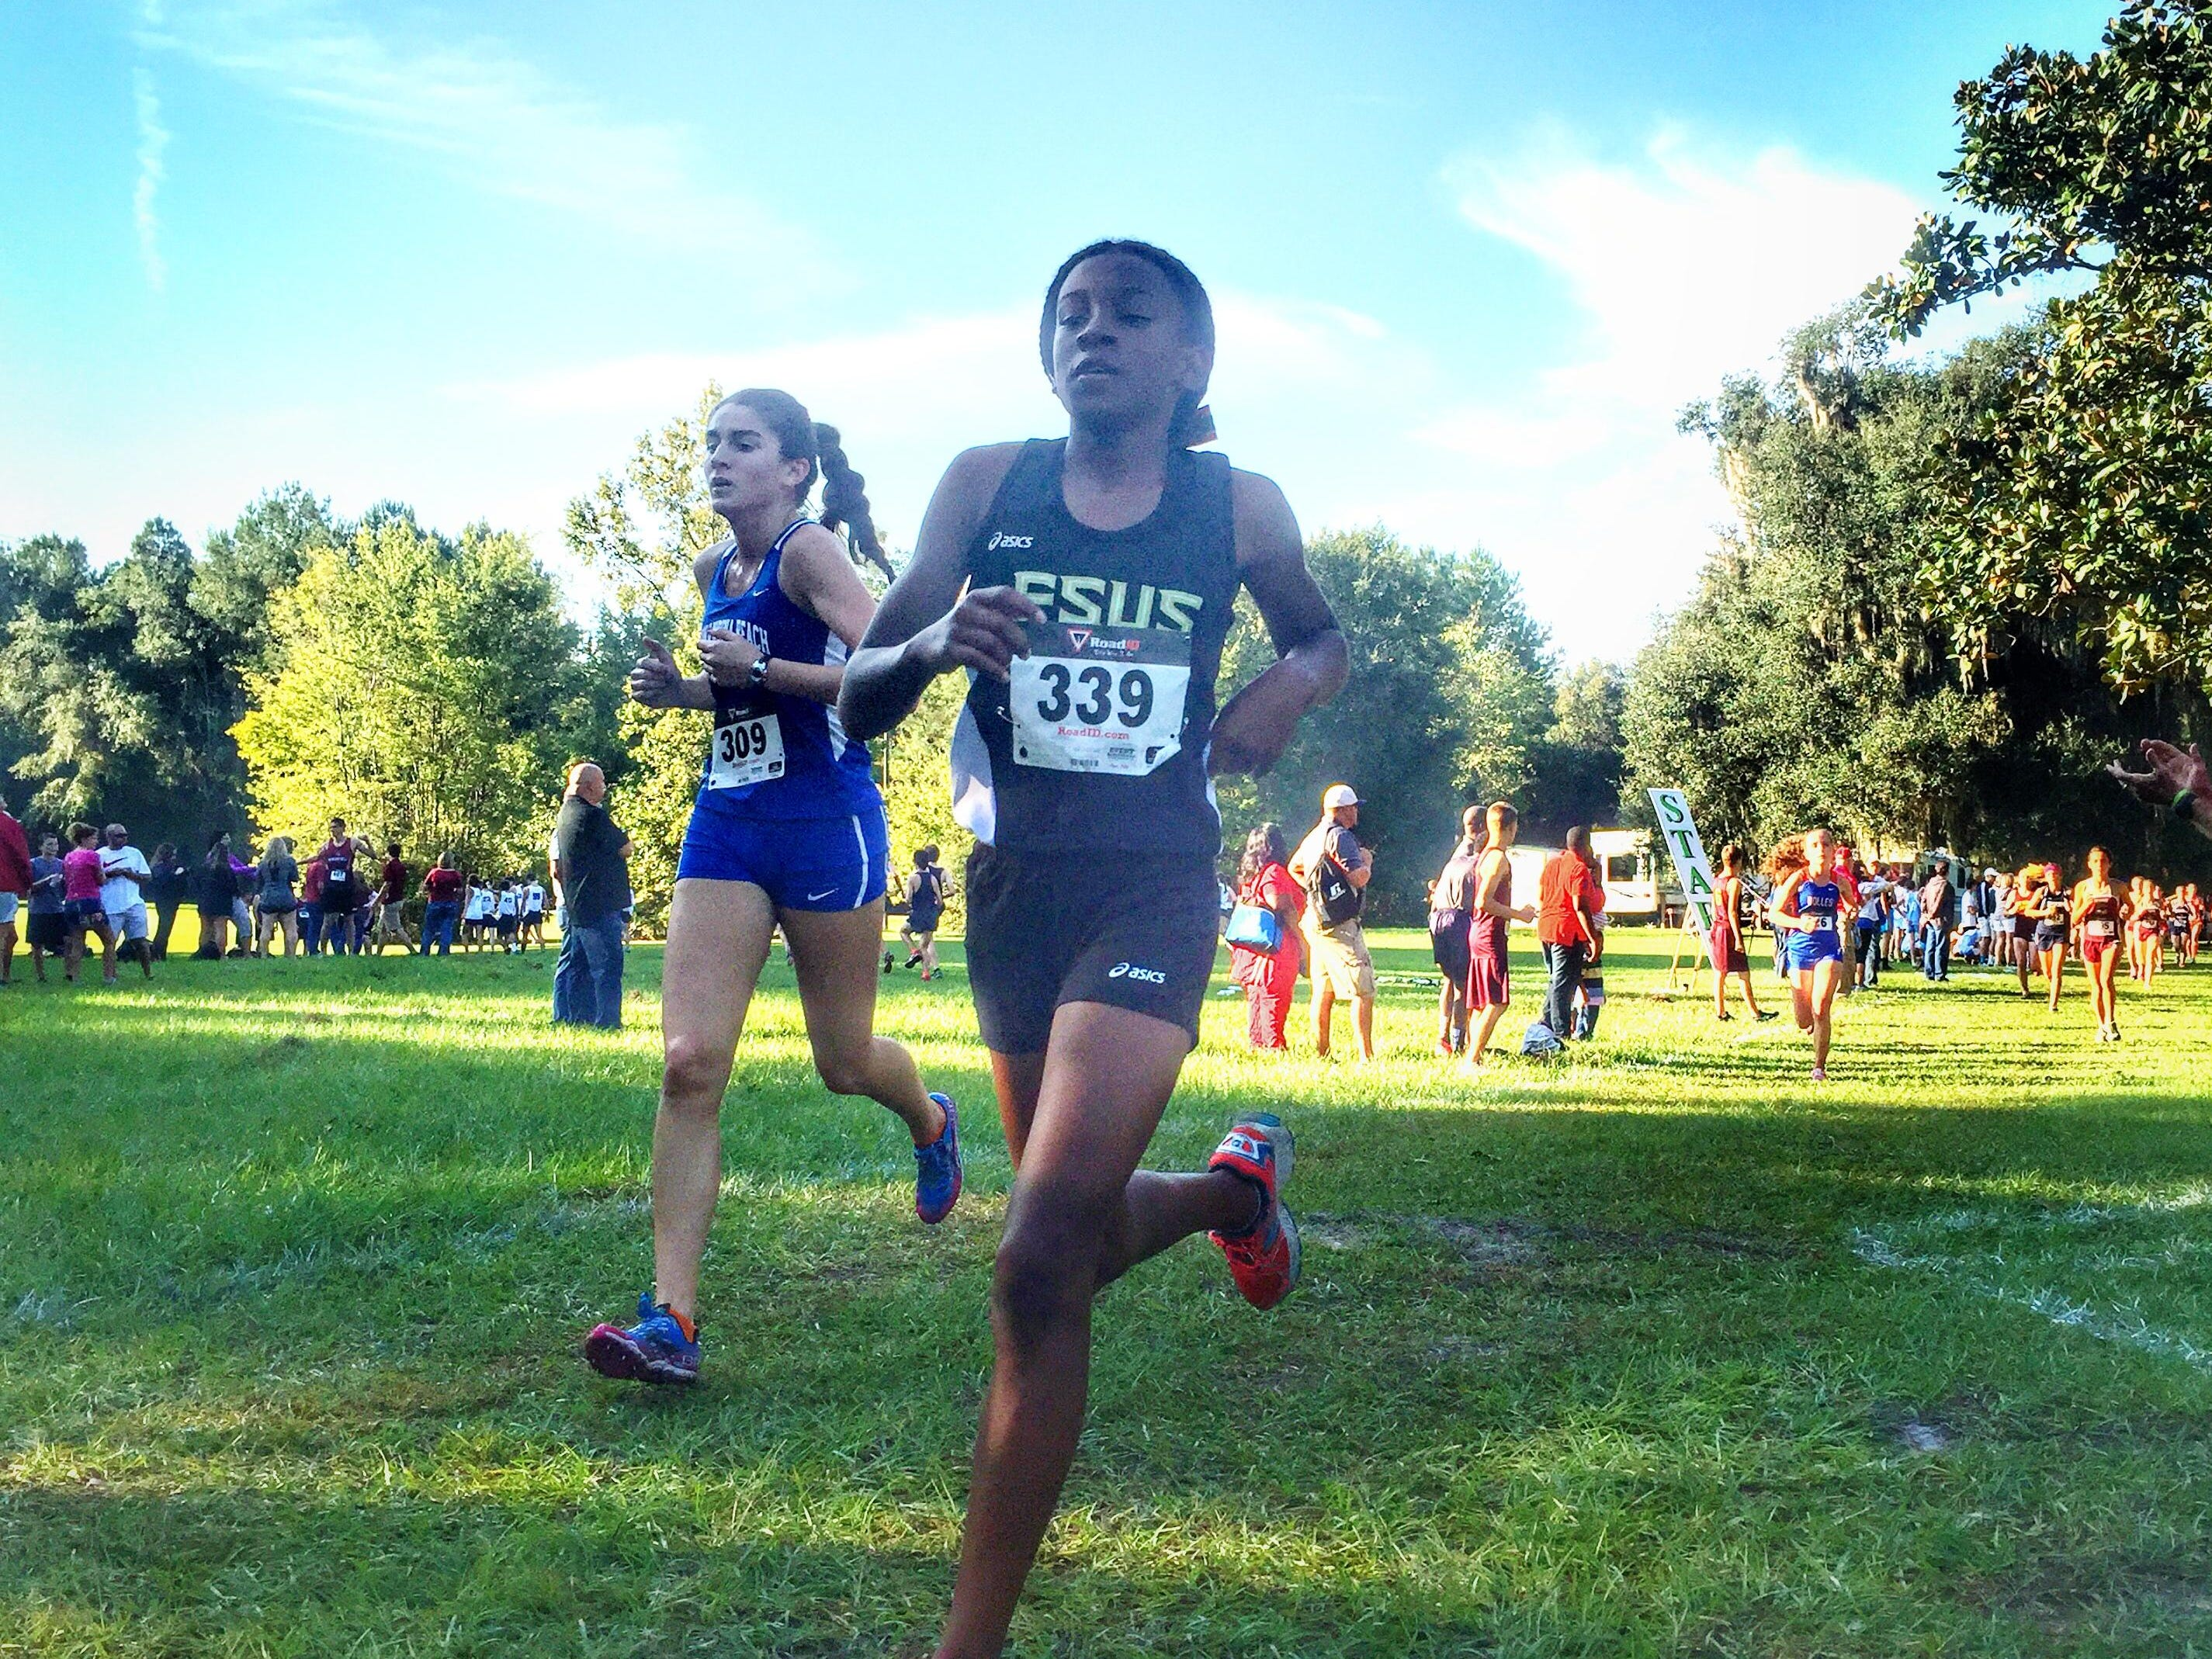 Florida High sixth grader Tonie Morgan finished in 12th place for the Seminoles and led her team to the first state meet appearance since 2000.